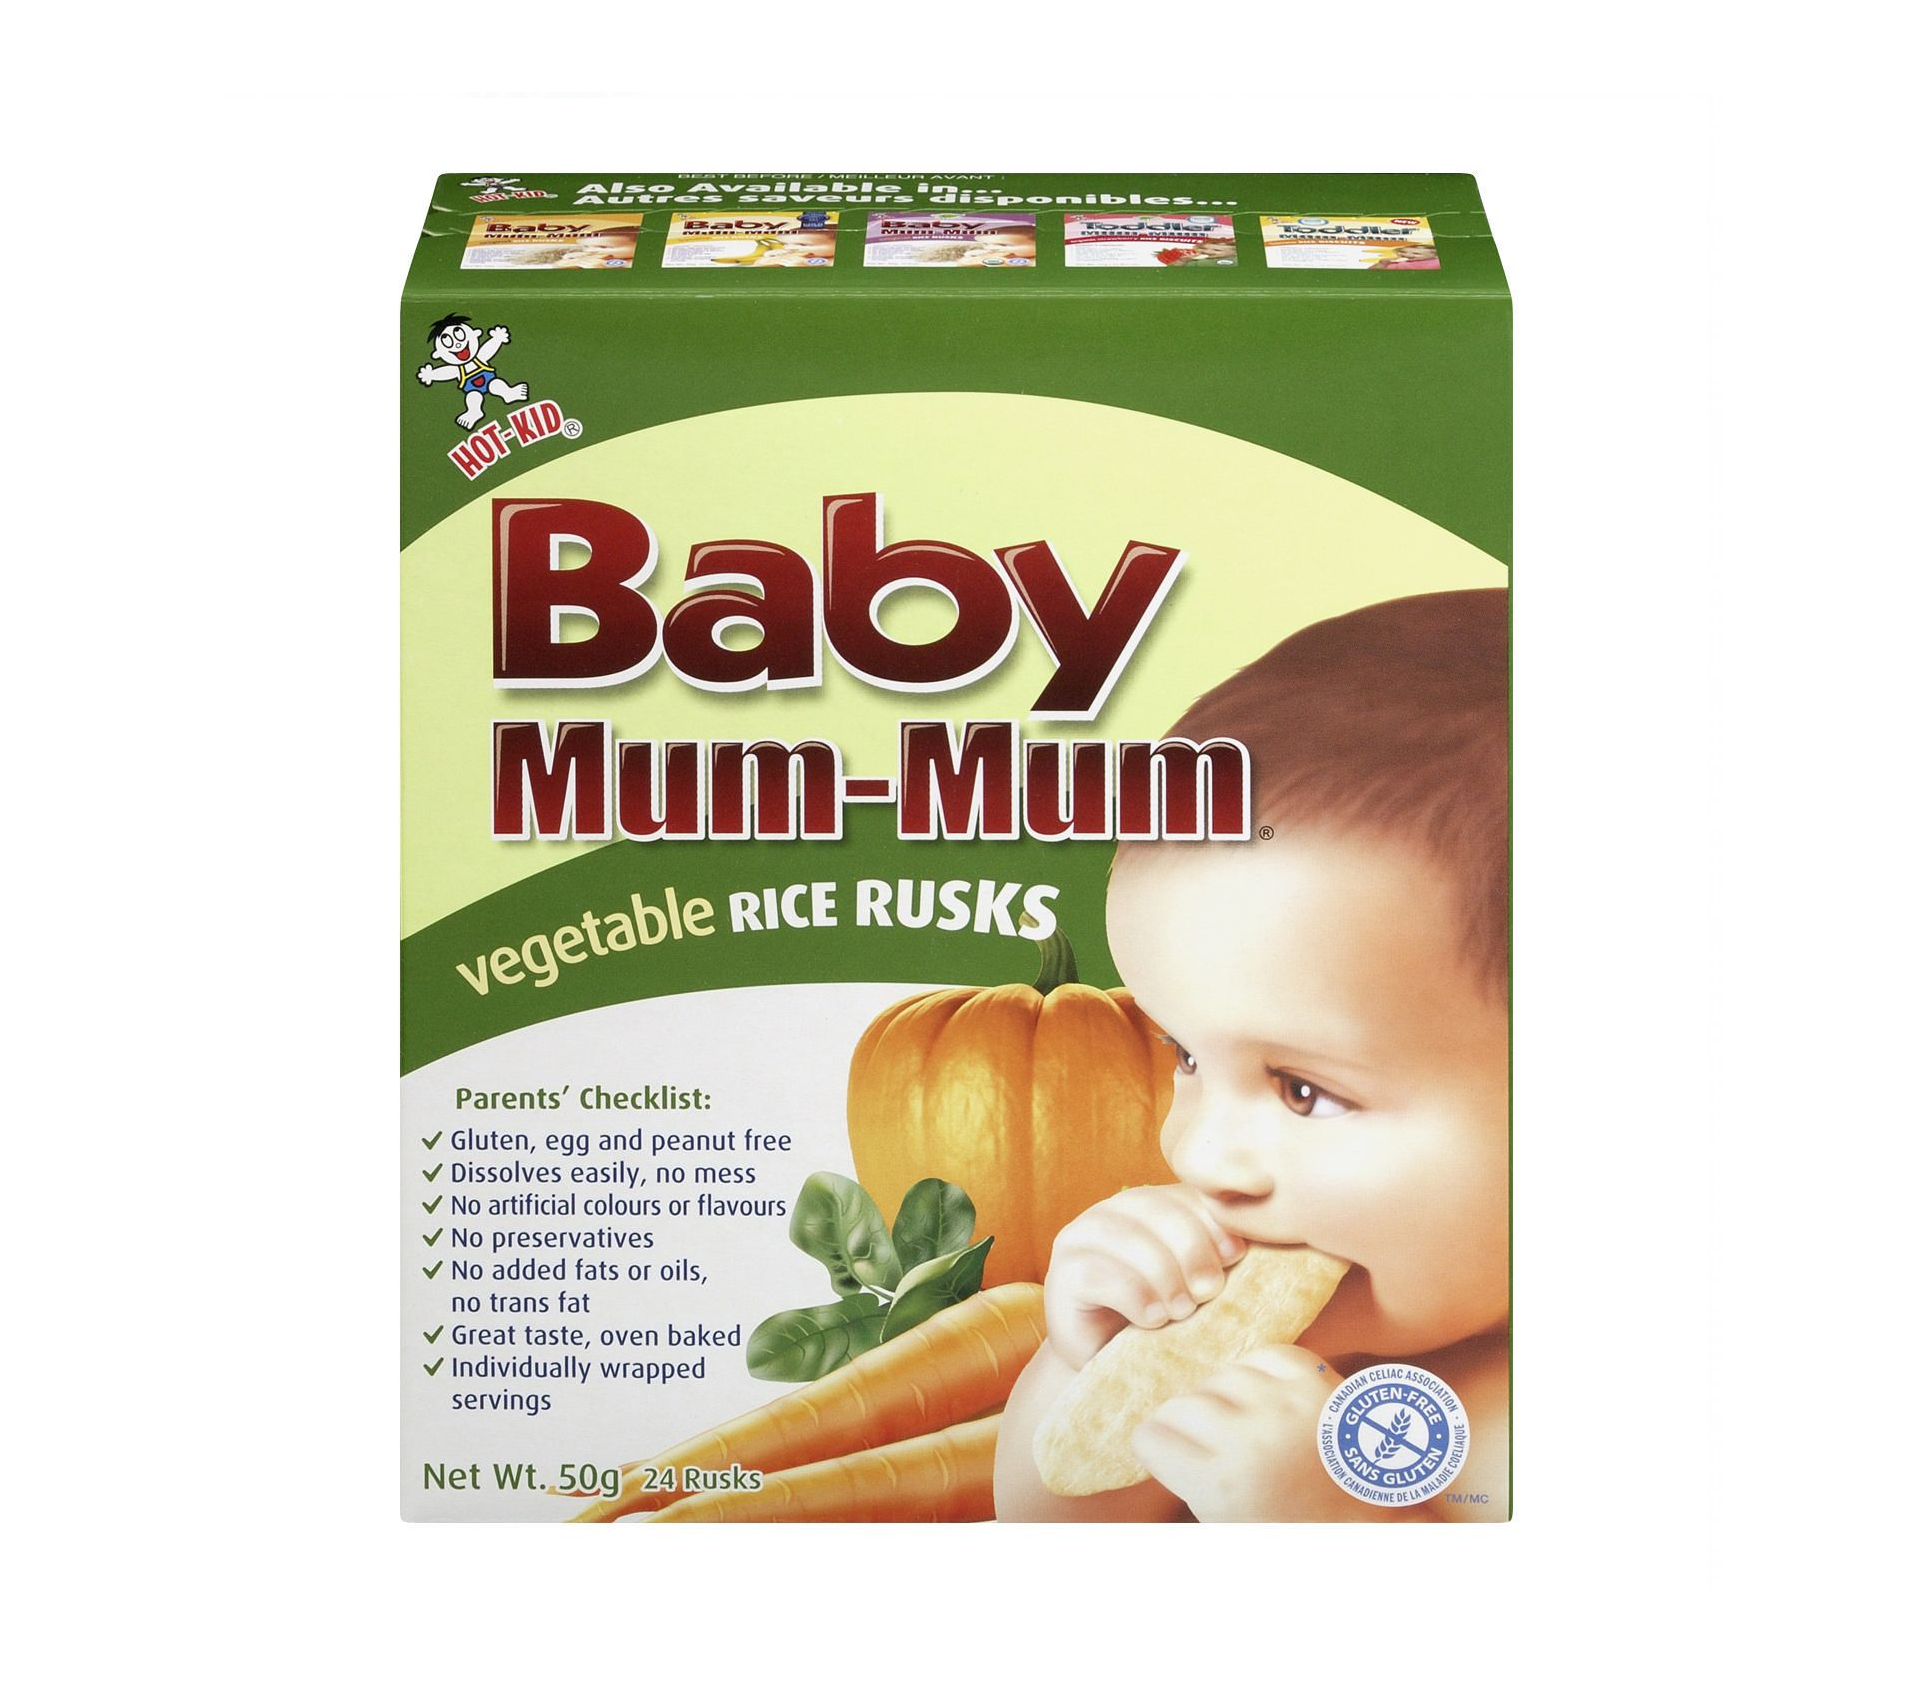 Baby Mum-Mum Vegetable Rice Rusks